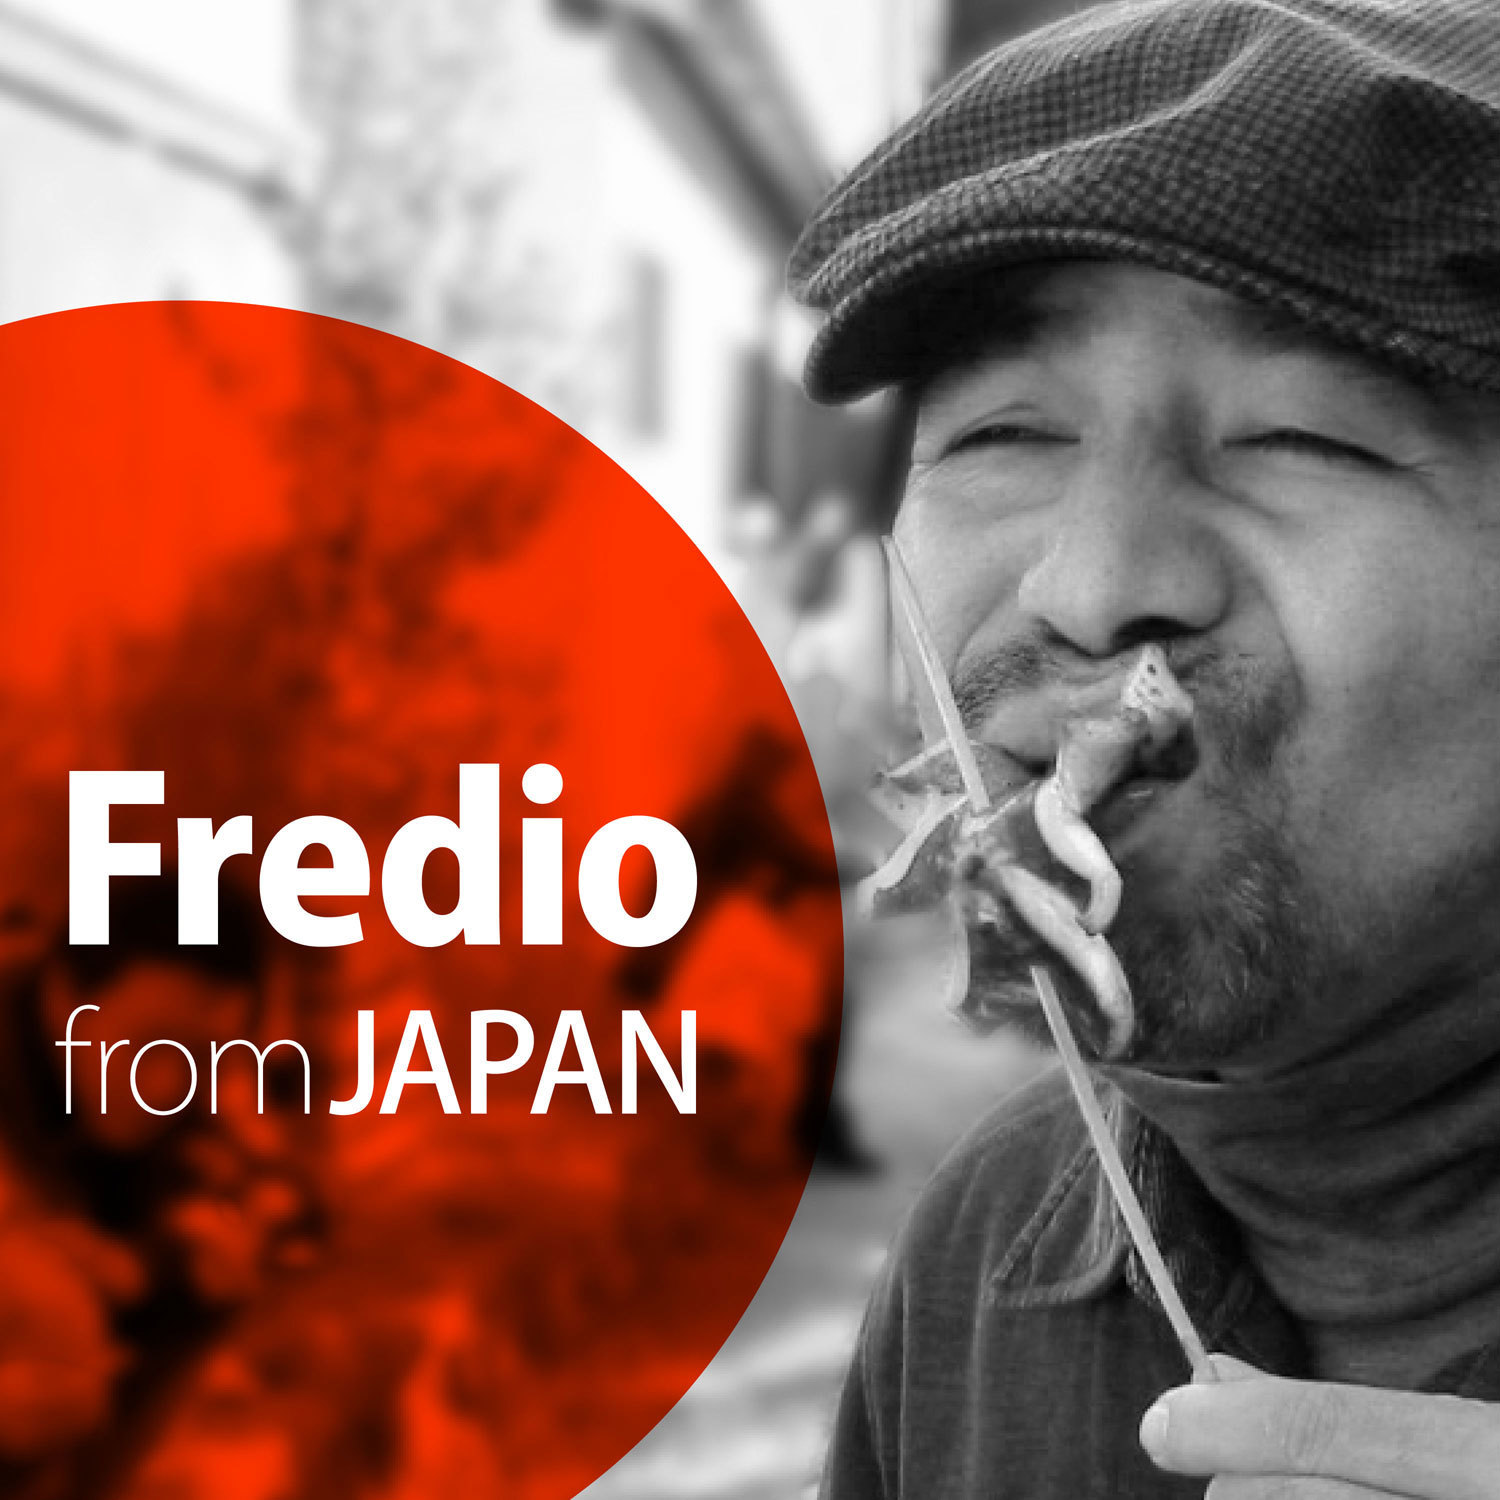 Fredio-from-JAPAN1500.jpg